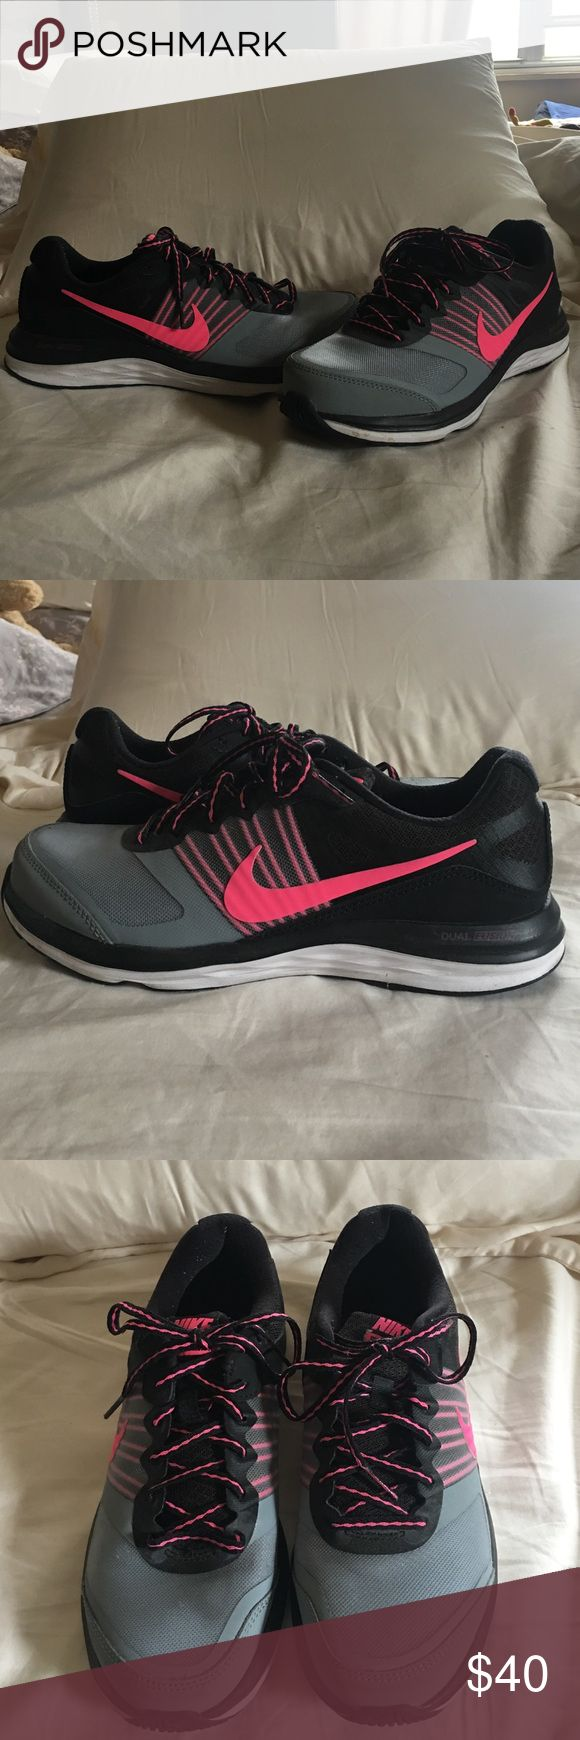 Brand New Nike Dual Fusion X Size 8.5 Nike Dual Fusion X - Like New Size 8.5. Nike Shoes Athletic Shoes